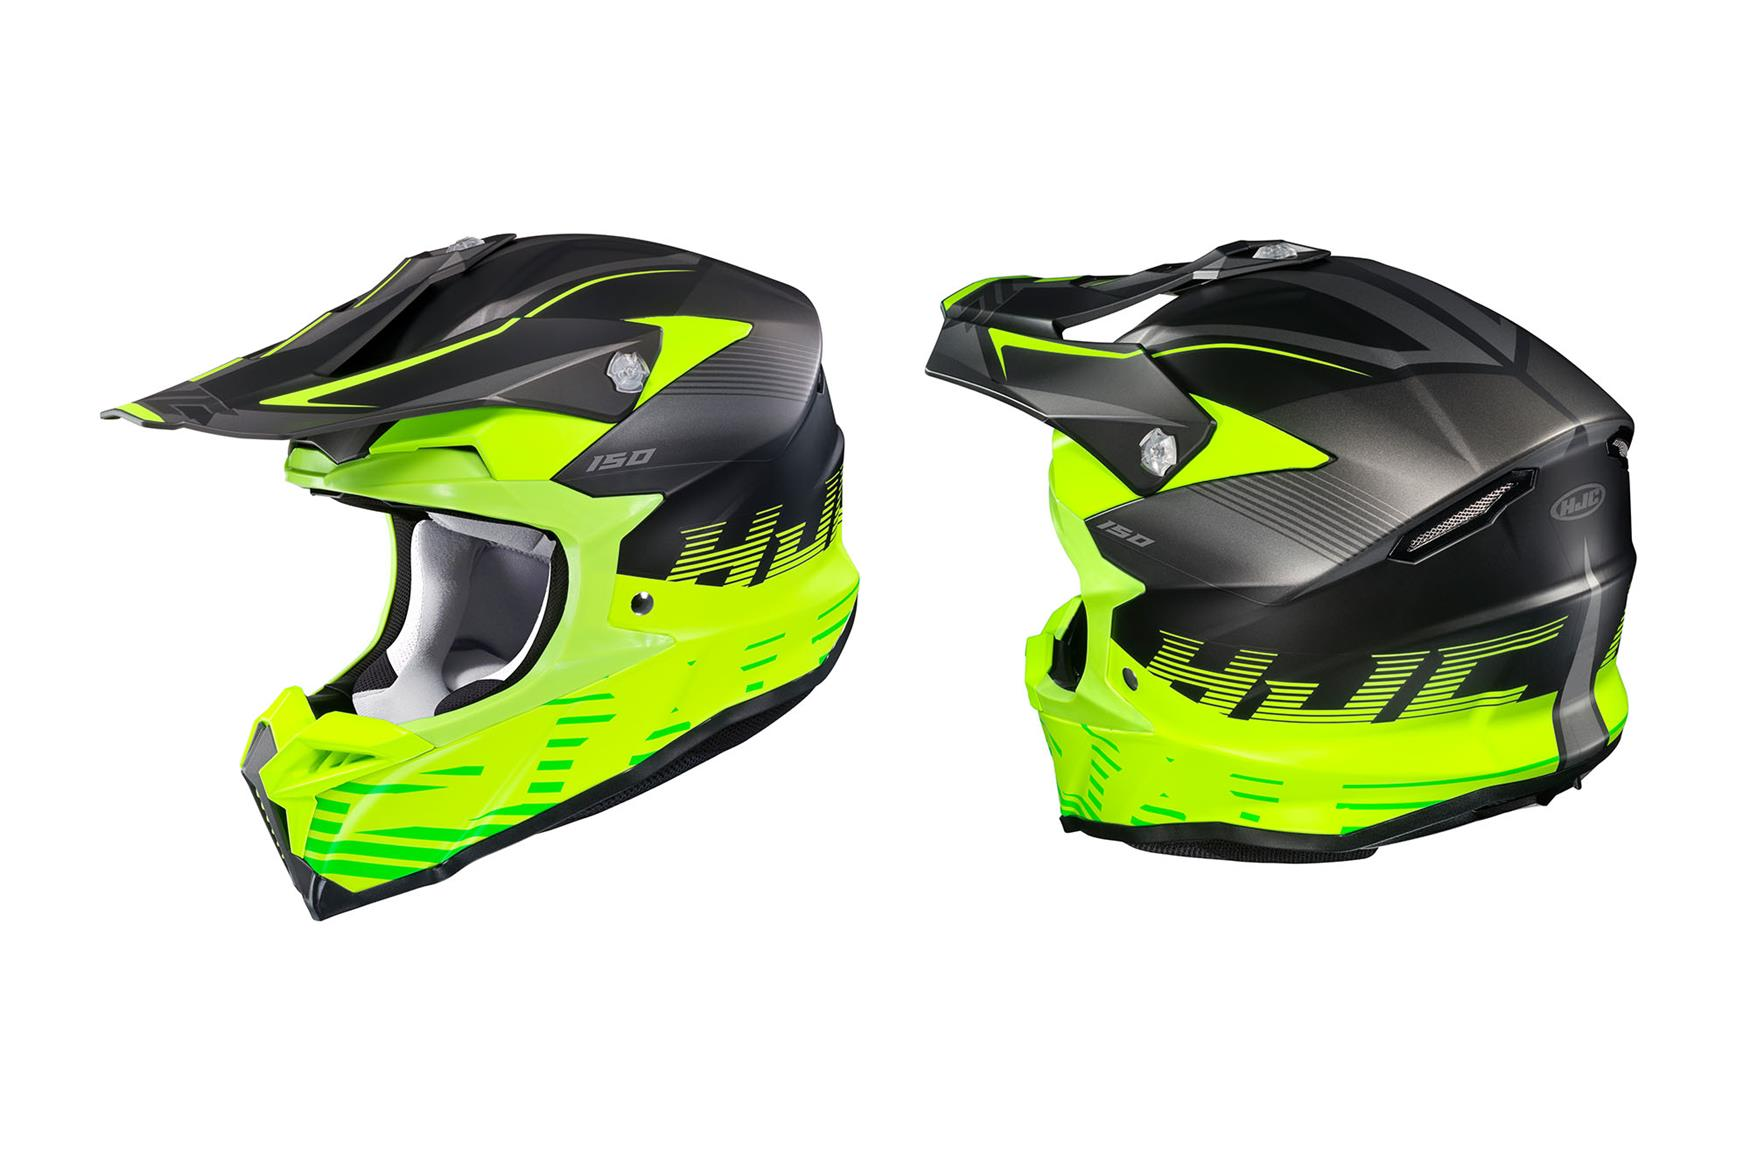 HJC i50 motocross helmet